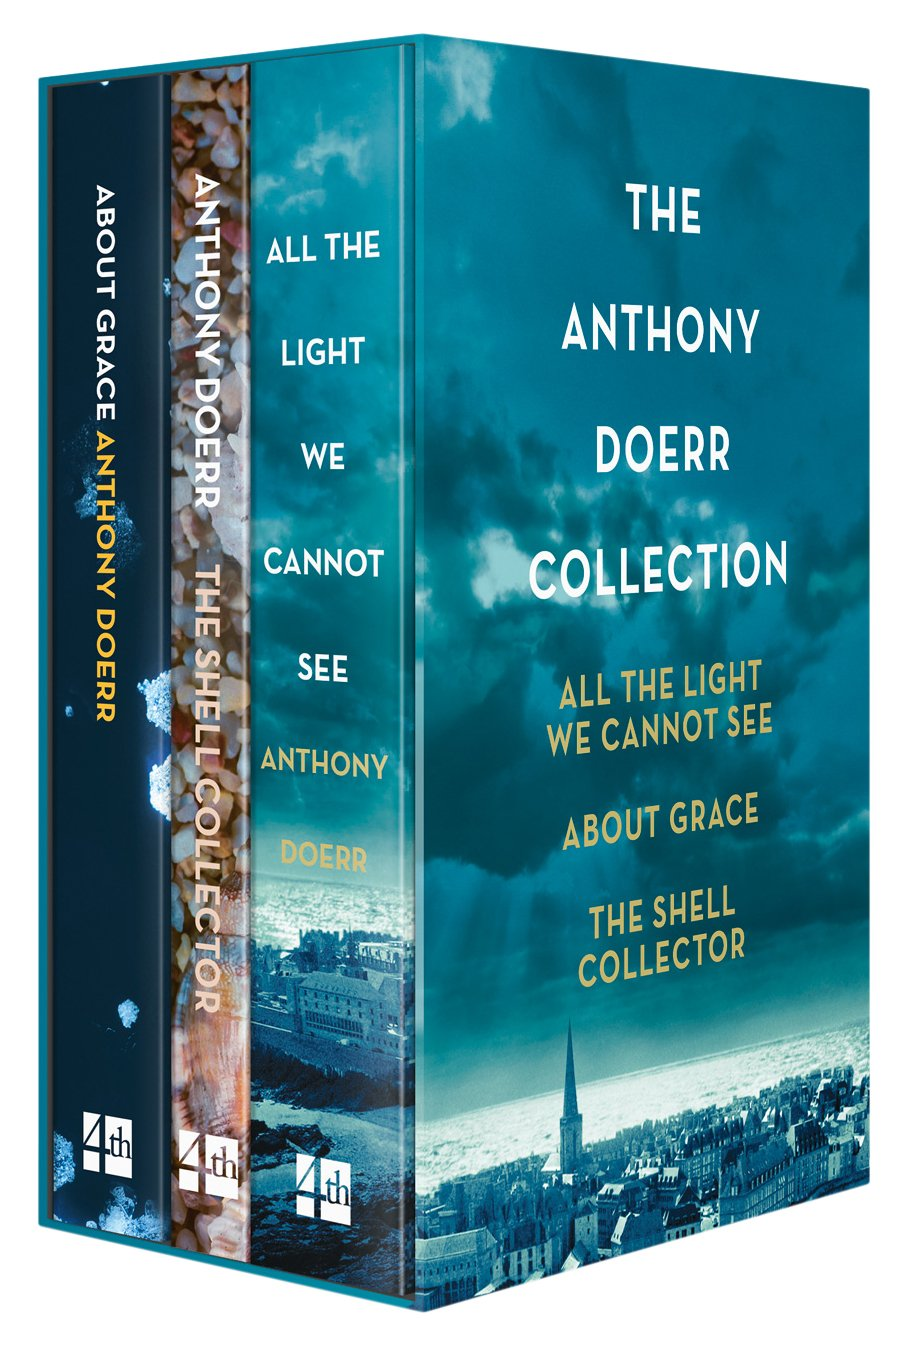 All The Light We Cannot See, About Grace And The Shell Collector: The  Anthony Doerr Collection: Amazon: Anthony Doerr: 9780008241940: Books